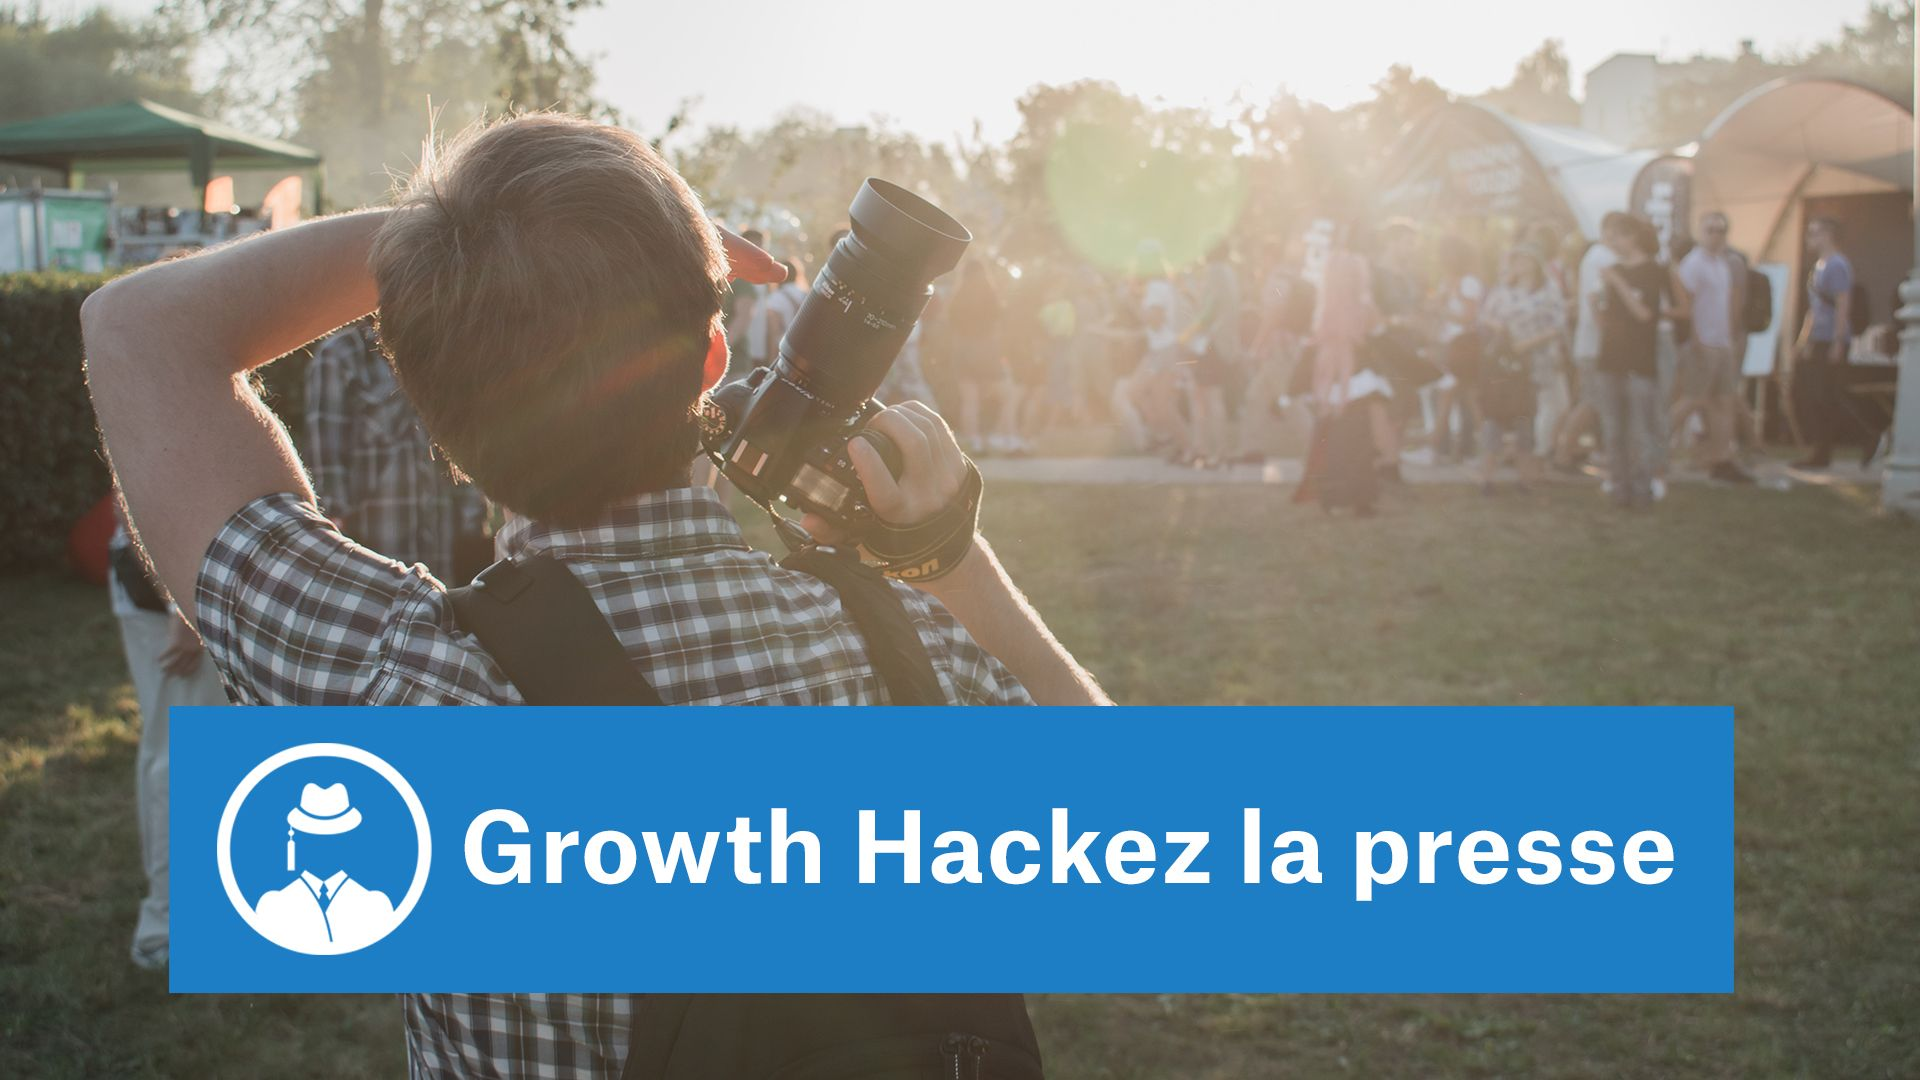 Growth Hackez la presse #GrowthHacking #WebMarketing #FormationGrowthHacking #CentreDeFormationFrance #TunnelAARRR #AARRR #SocialMedia #CommunityManagement #SEO #SiteWeb